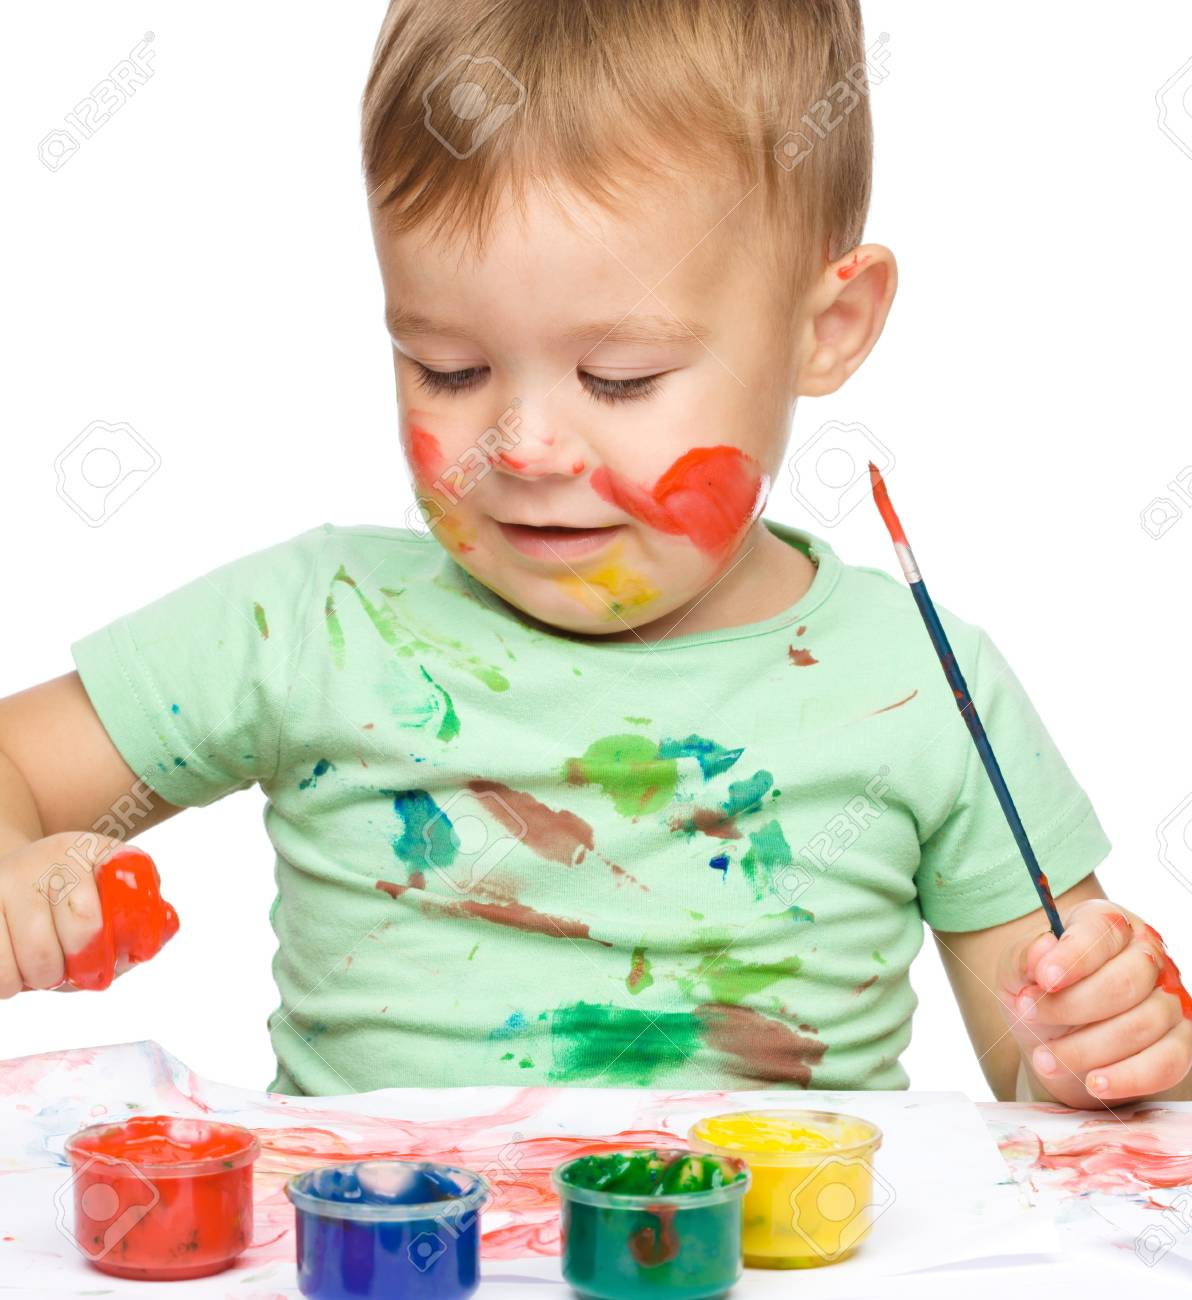 Portrait of a cute little boy playing with paints, isolated over white Stock Photo - 15940425